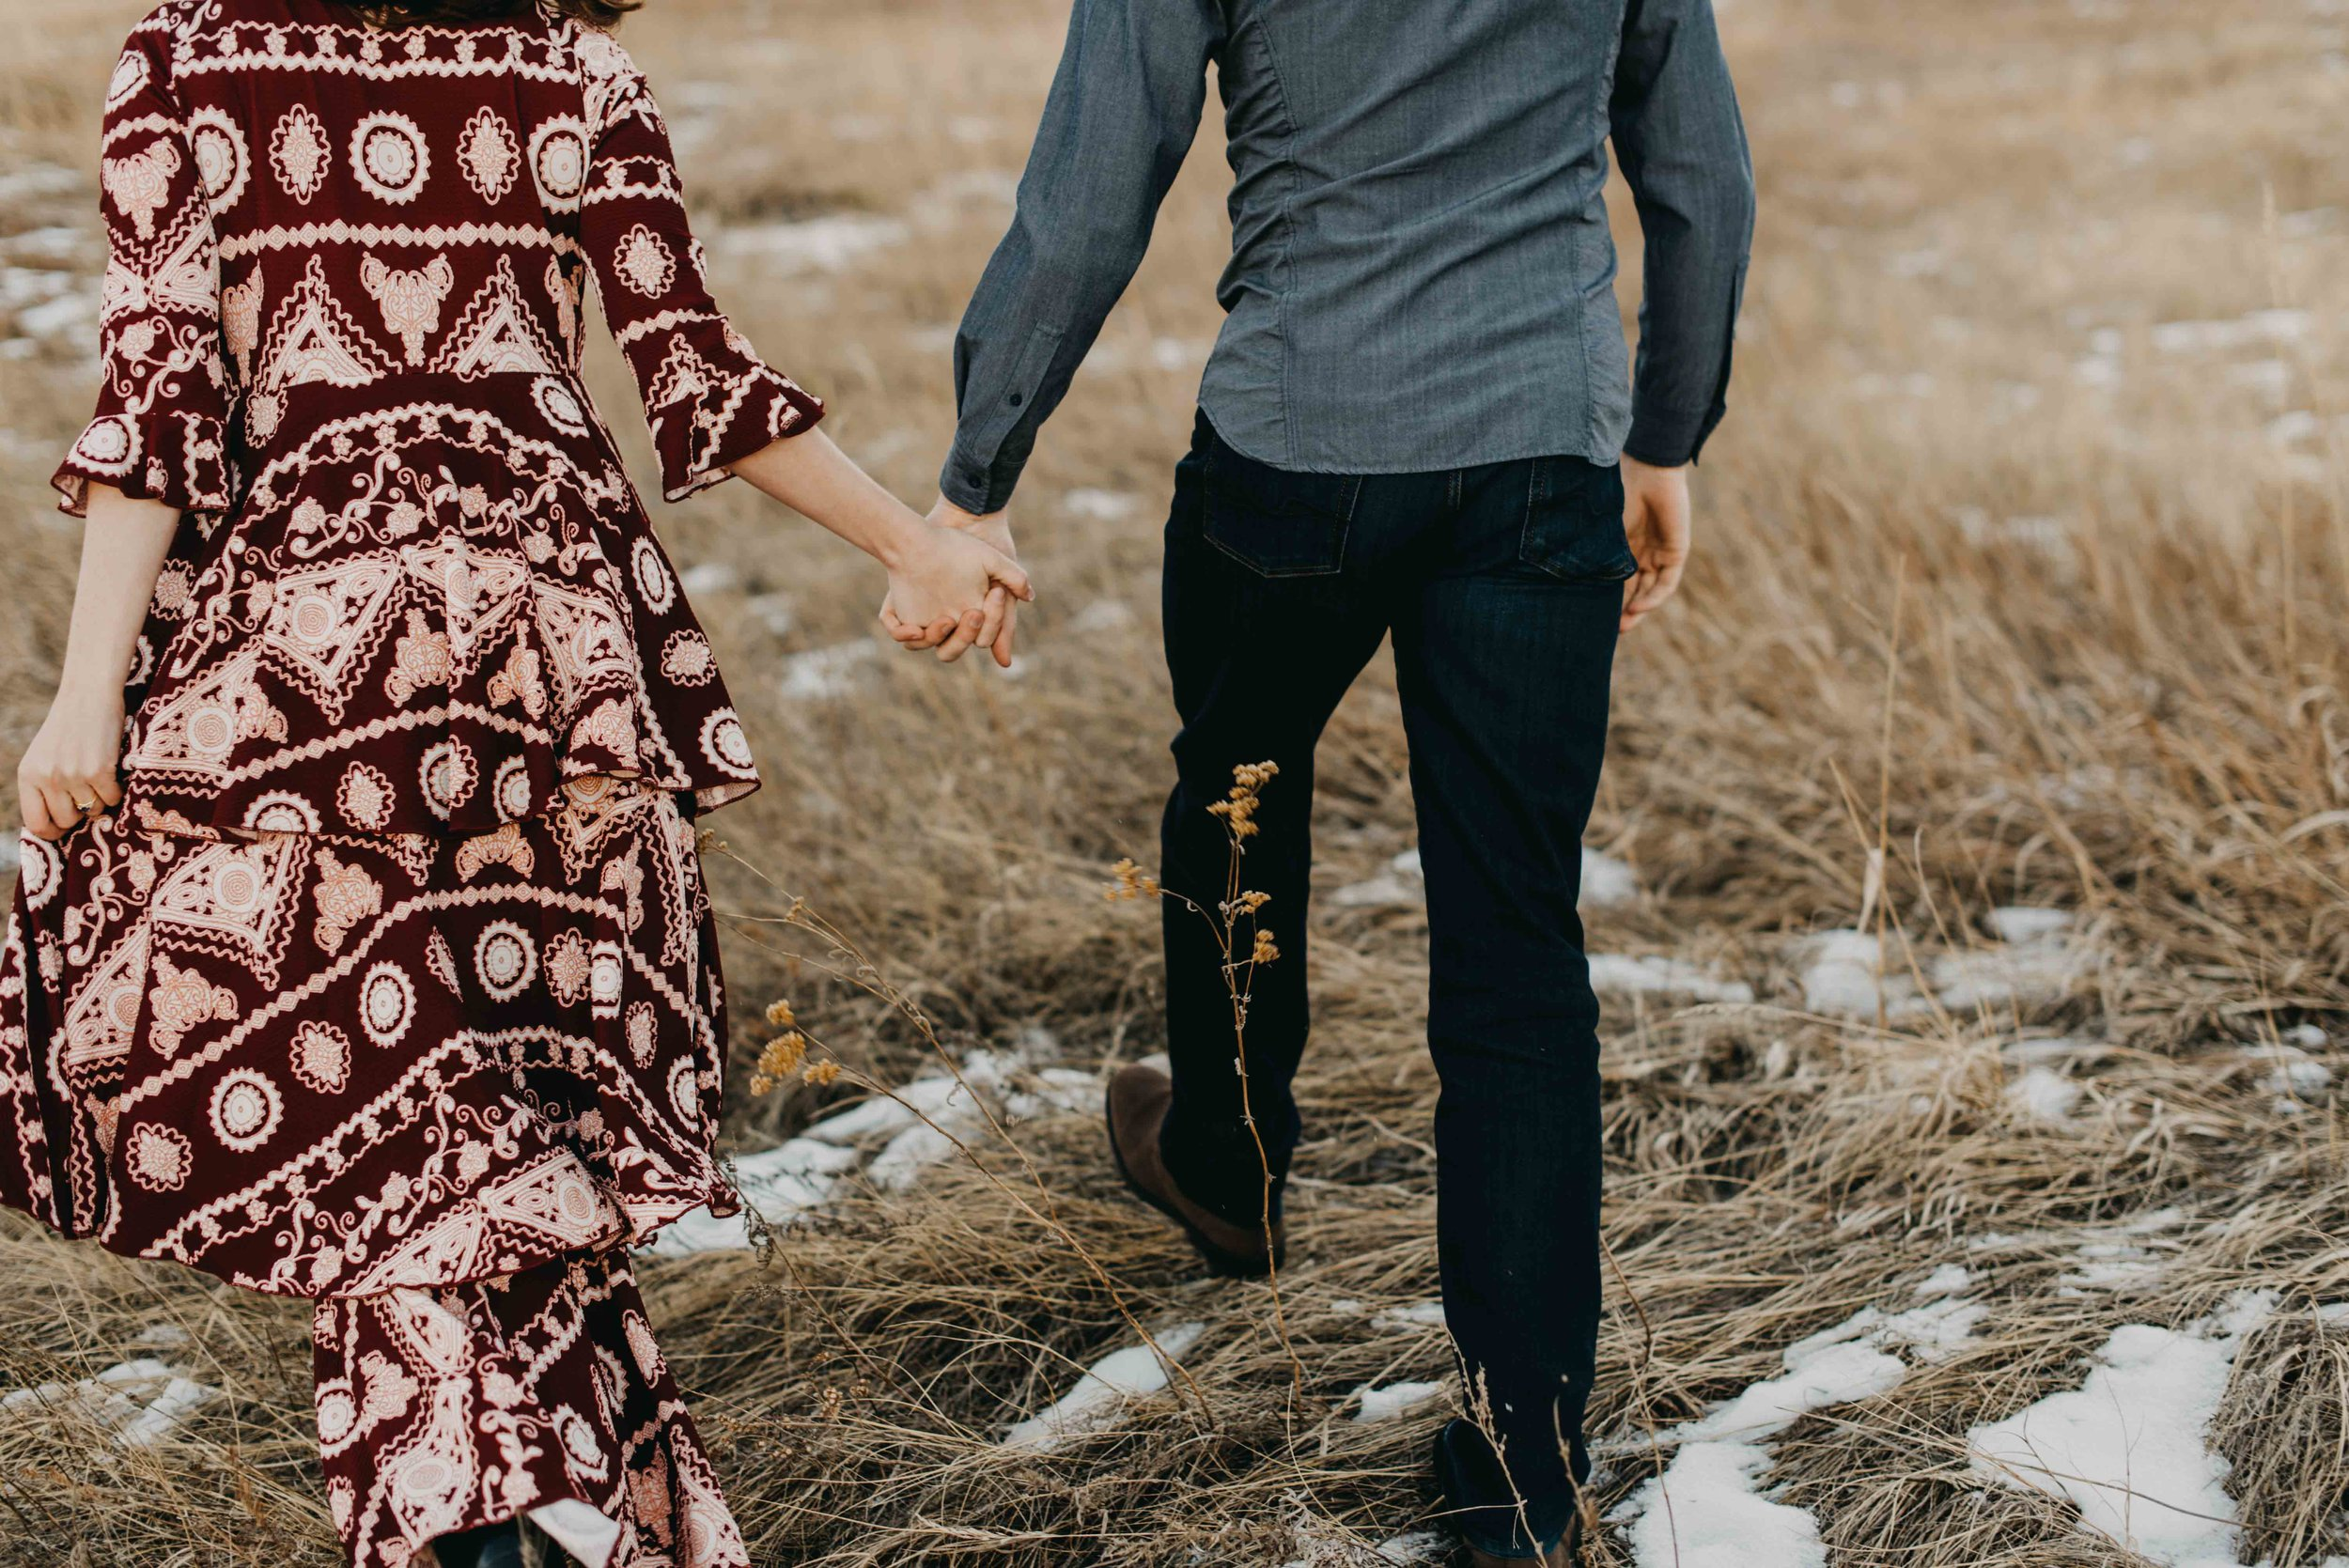 Trinity and Peter flew in from Houston to have their Chautauqua Hiking Engagement session. They were such troopers about the cold! There was snow on the ground and it was the day after New Years.